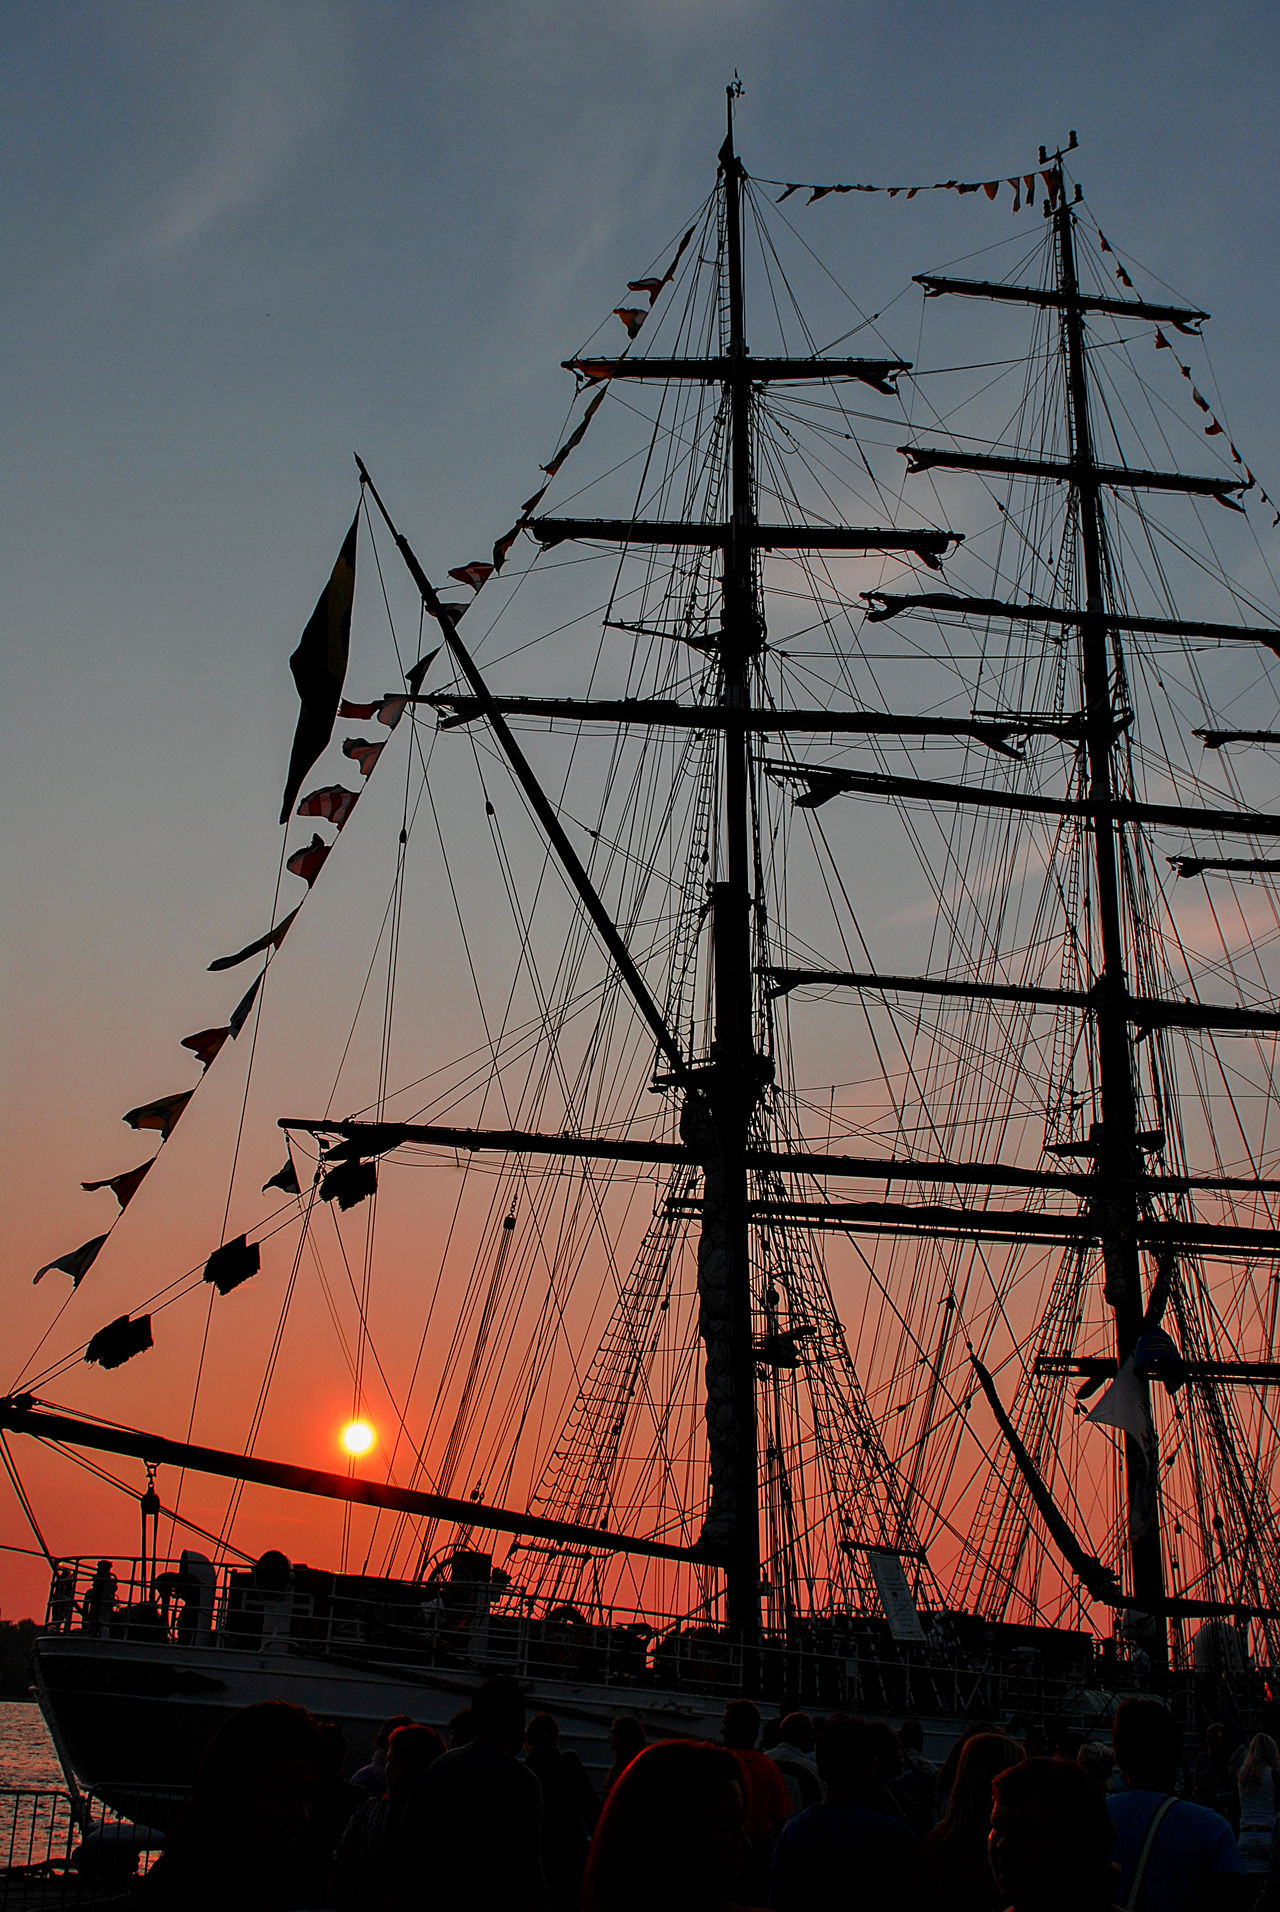 Photo Picture of a Sail Boat Silhouette at Sunset Daugava EyeEm Best Shots EyeEmNewHere Gold Golden Golden Sunset Masts Nautical Vessel Outdoors Reflection Regatta Riwer Romance Sail Boat Sail Boats Sailing Sailing Sport Sea Silhouette Sky Sailing Boat Sunset The City Light Water Yachting